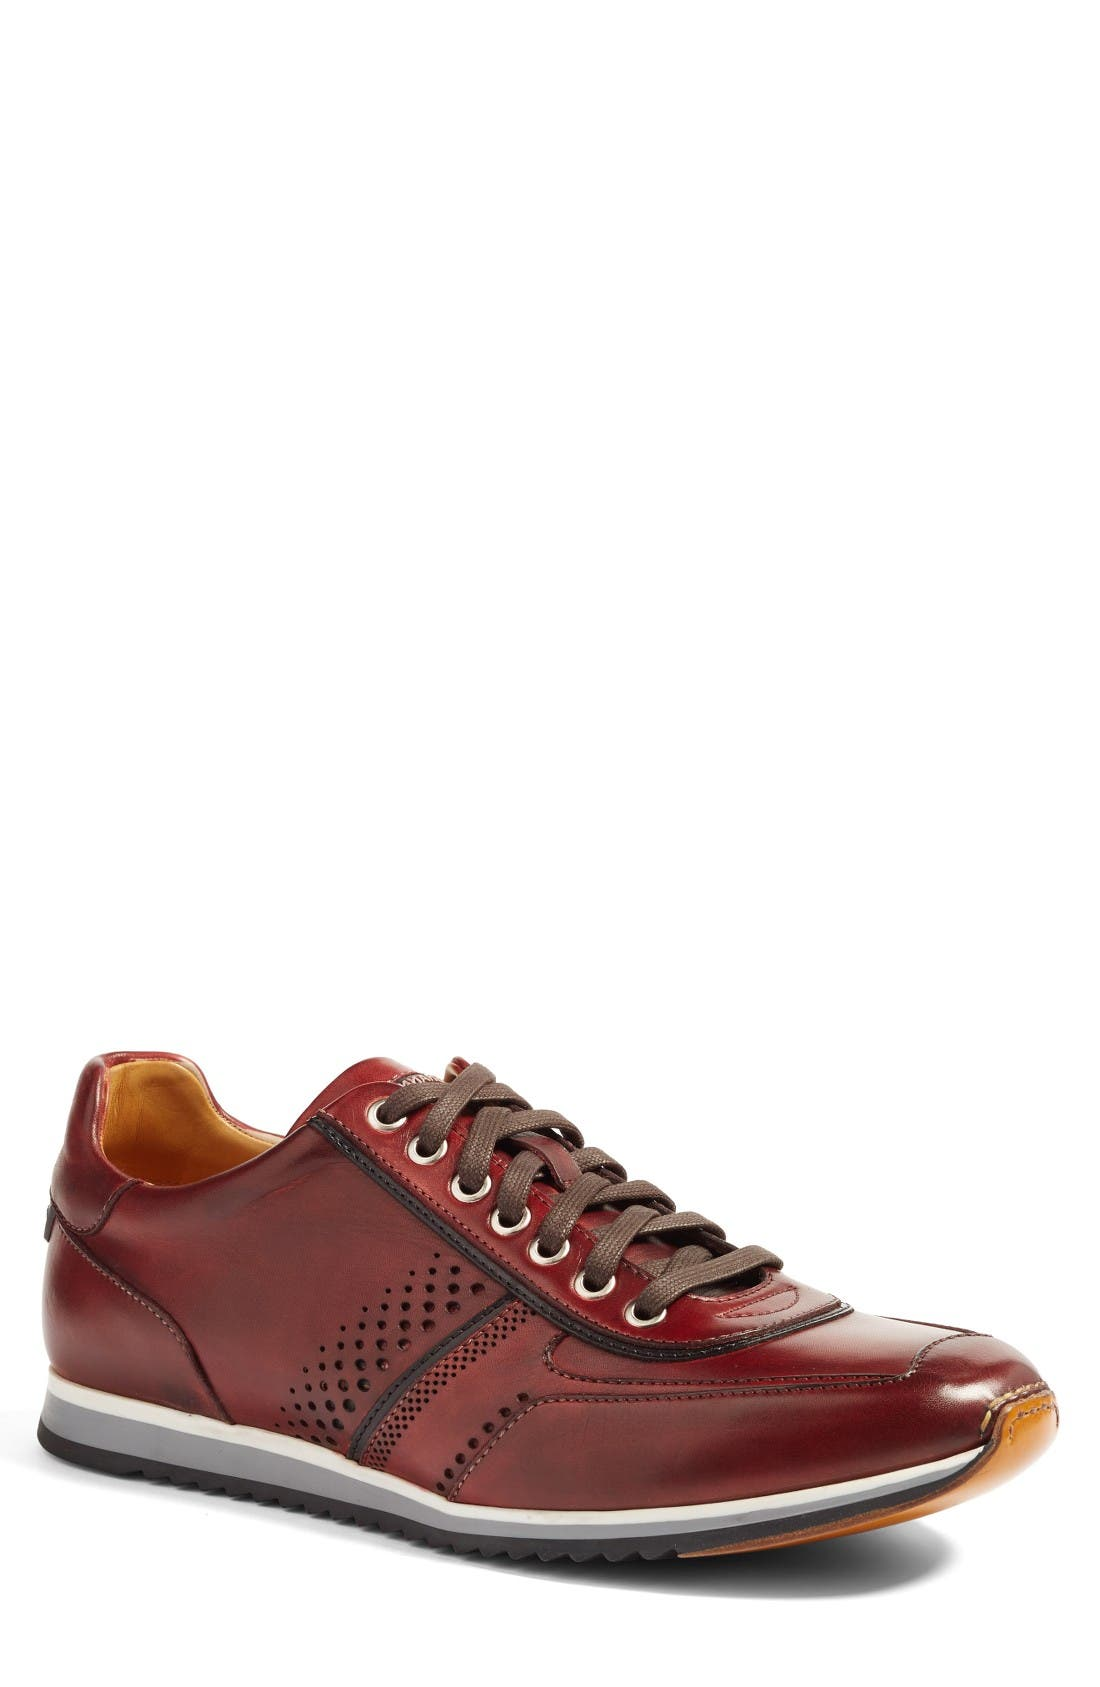 Alternate Image 1 Selected - Magnanni 'Cristian' Sneaker (Men)